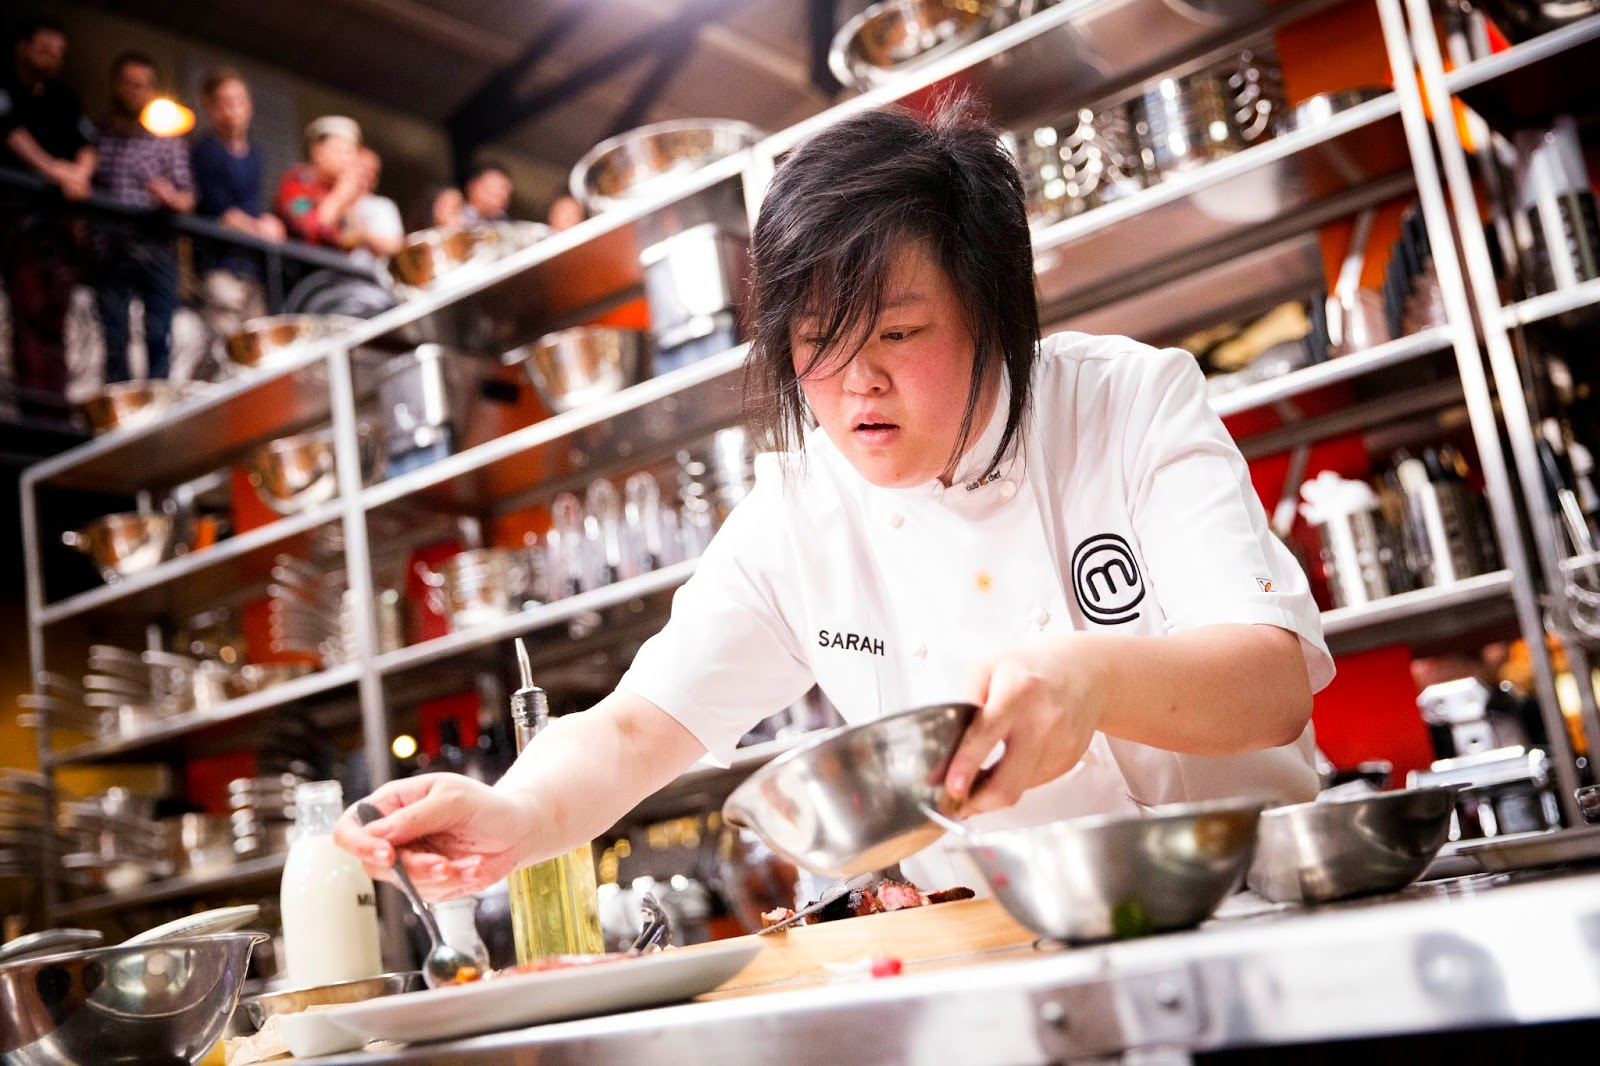 """Malaysian chef Sarah Tiong shares her experience on """"MasterChef"""""""